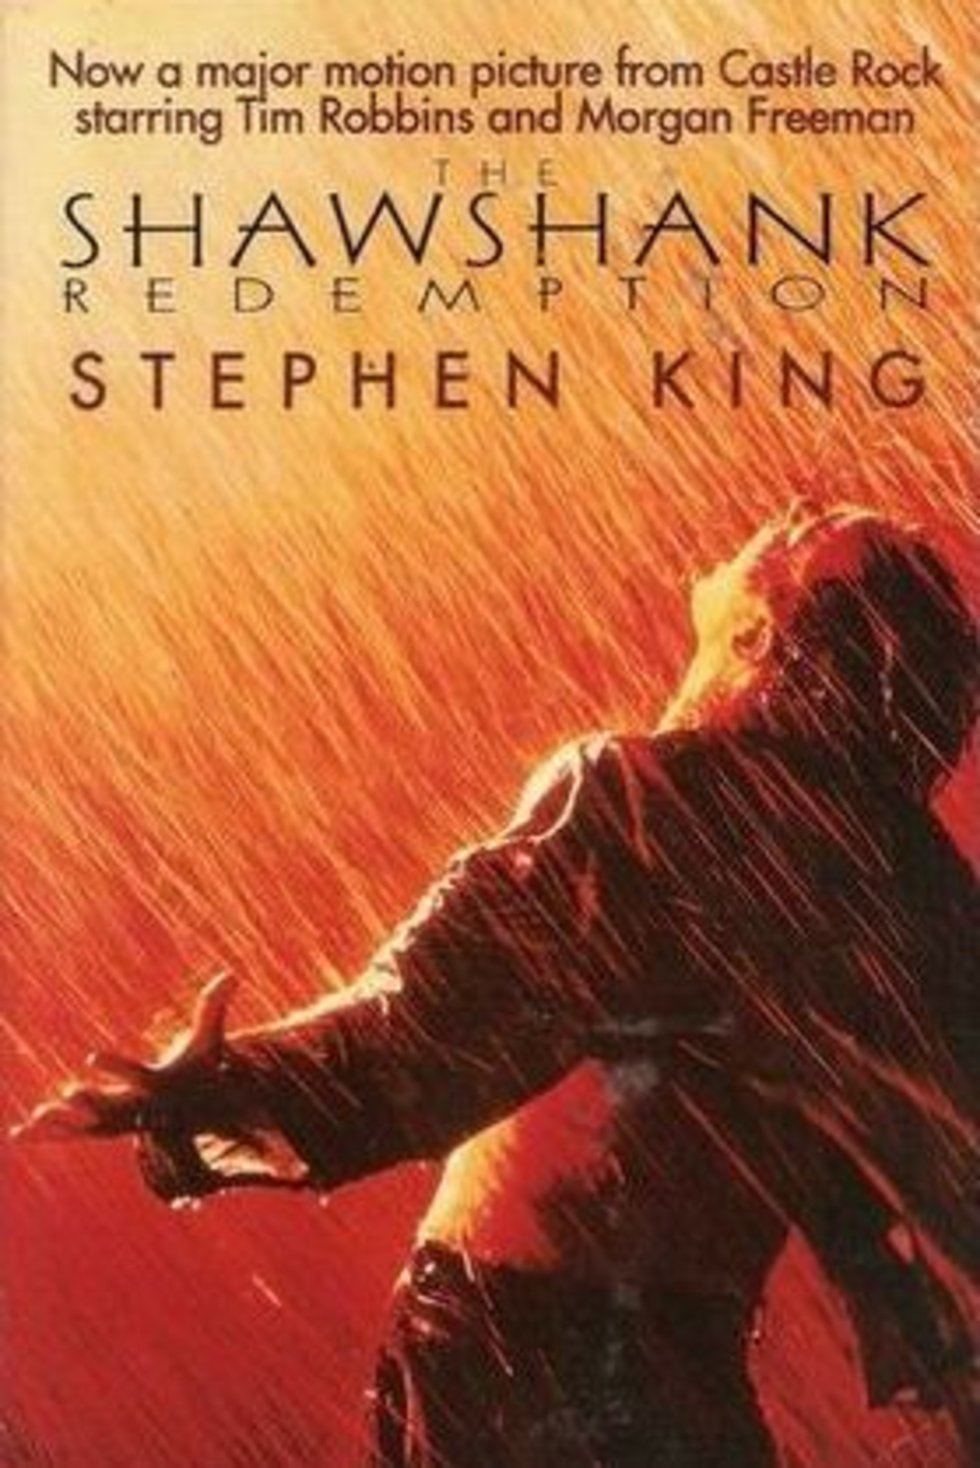 shawshank redemption essay hope king for a year rita hayworth and  king for a year rita hayworth and shawshank redemption reviewed rita hayworth and shawshank redemption reviewed